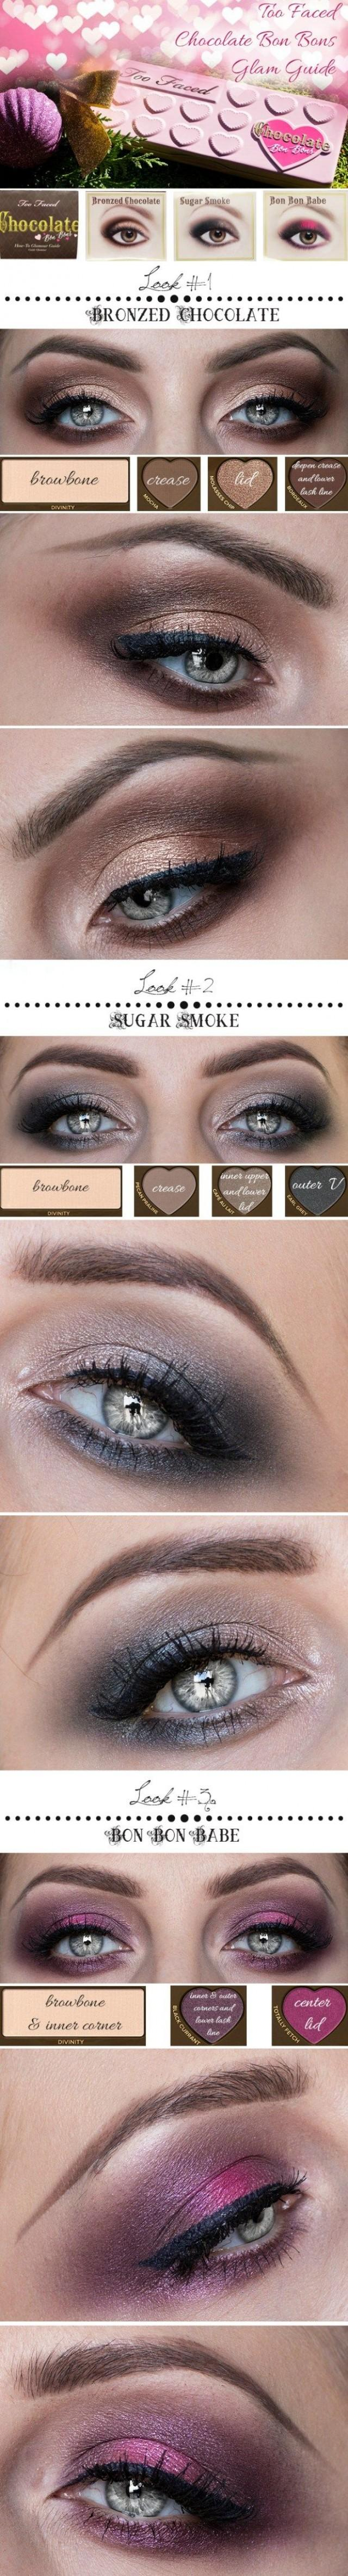 Too Faced Chocolate Bon Bons Glam Guide